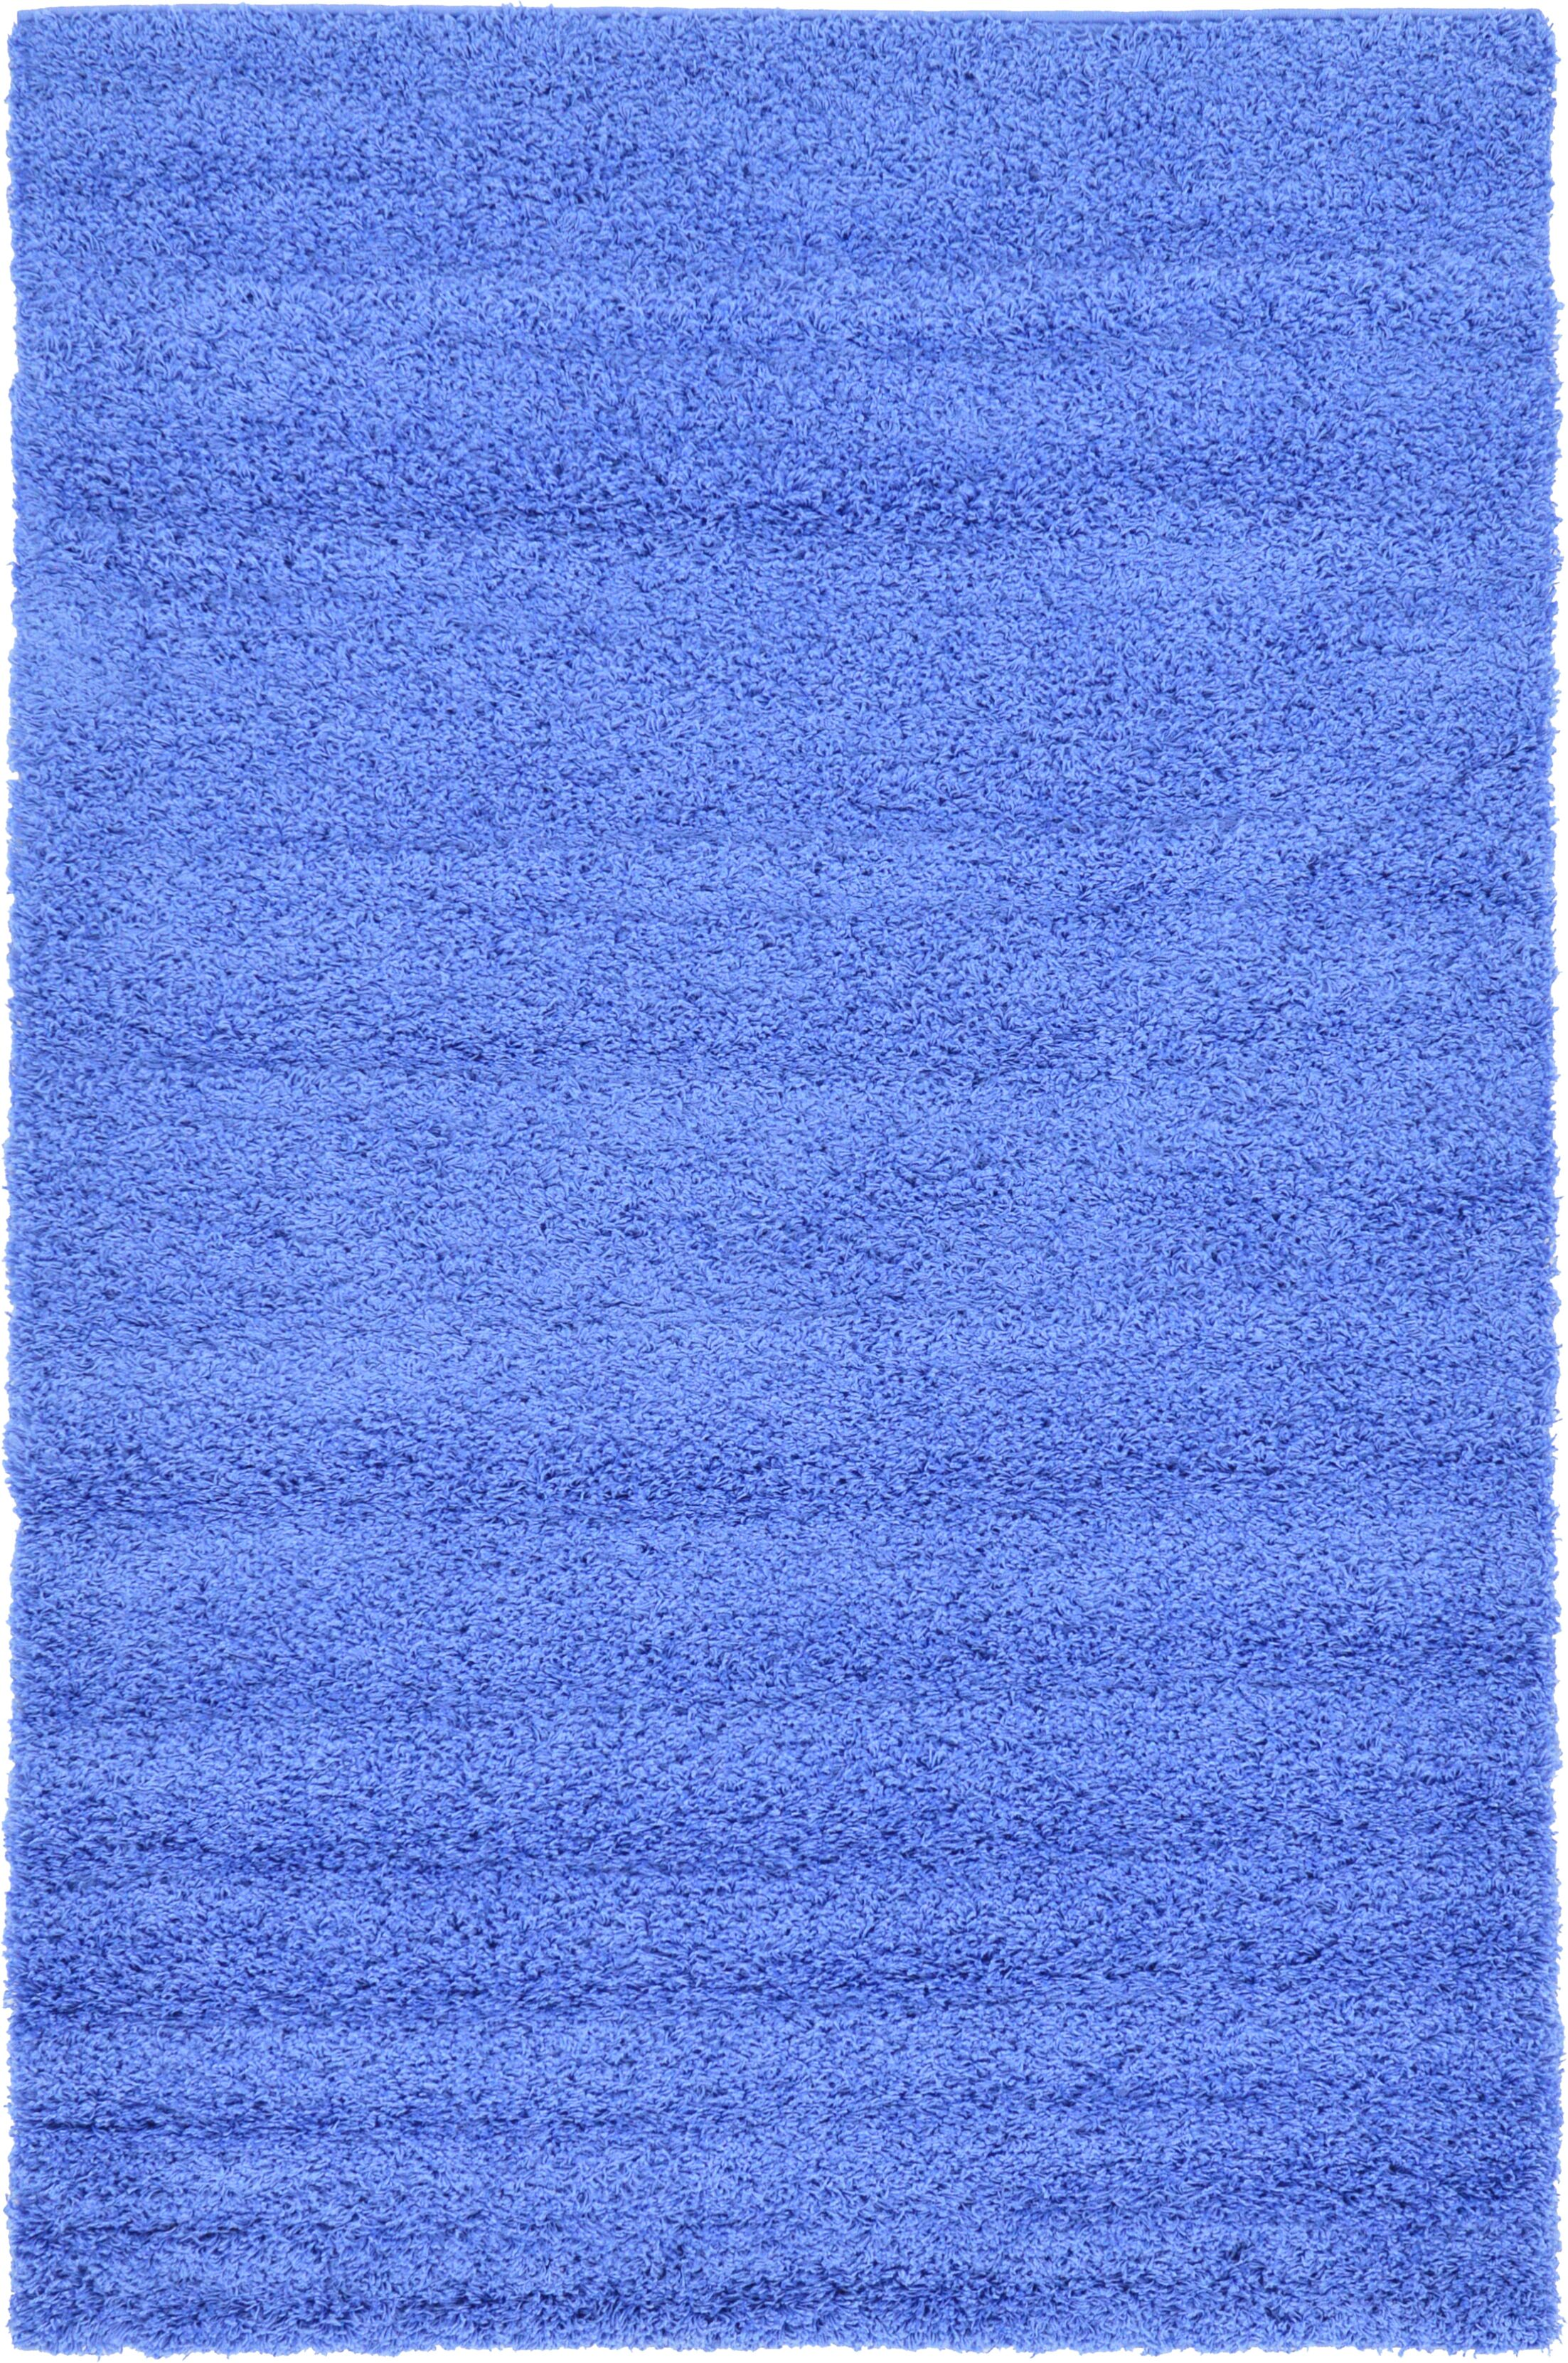 Madison Periwinkle Blue Area Rug Rug Size: Rectangle 5' x 8'